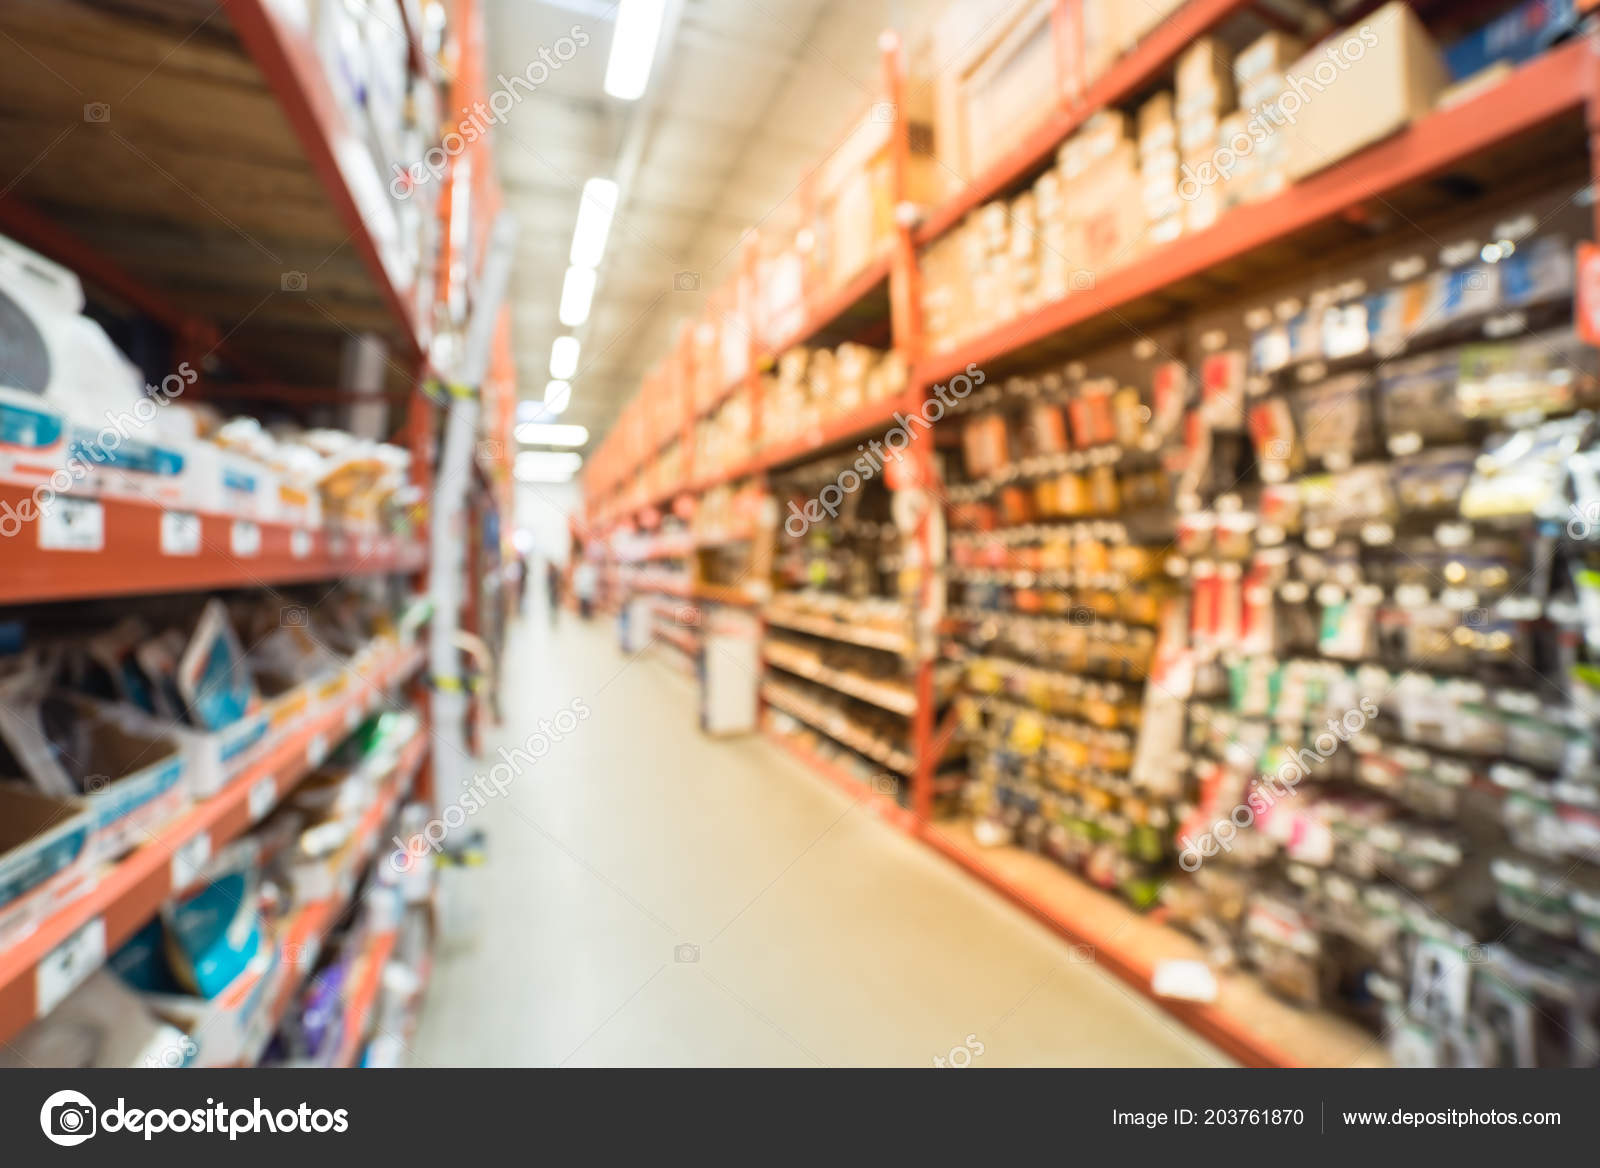 Superieur Blurred A Large Hardware Store, Tools And Material. Defocused Interior Of  Home Improvement Retailer With Racks Of Door Hardware, Weather Proofing And  ...